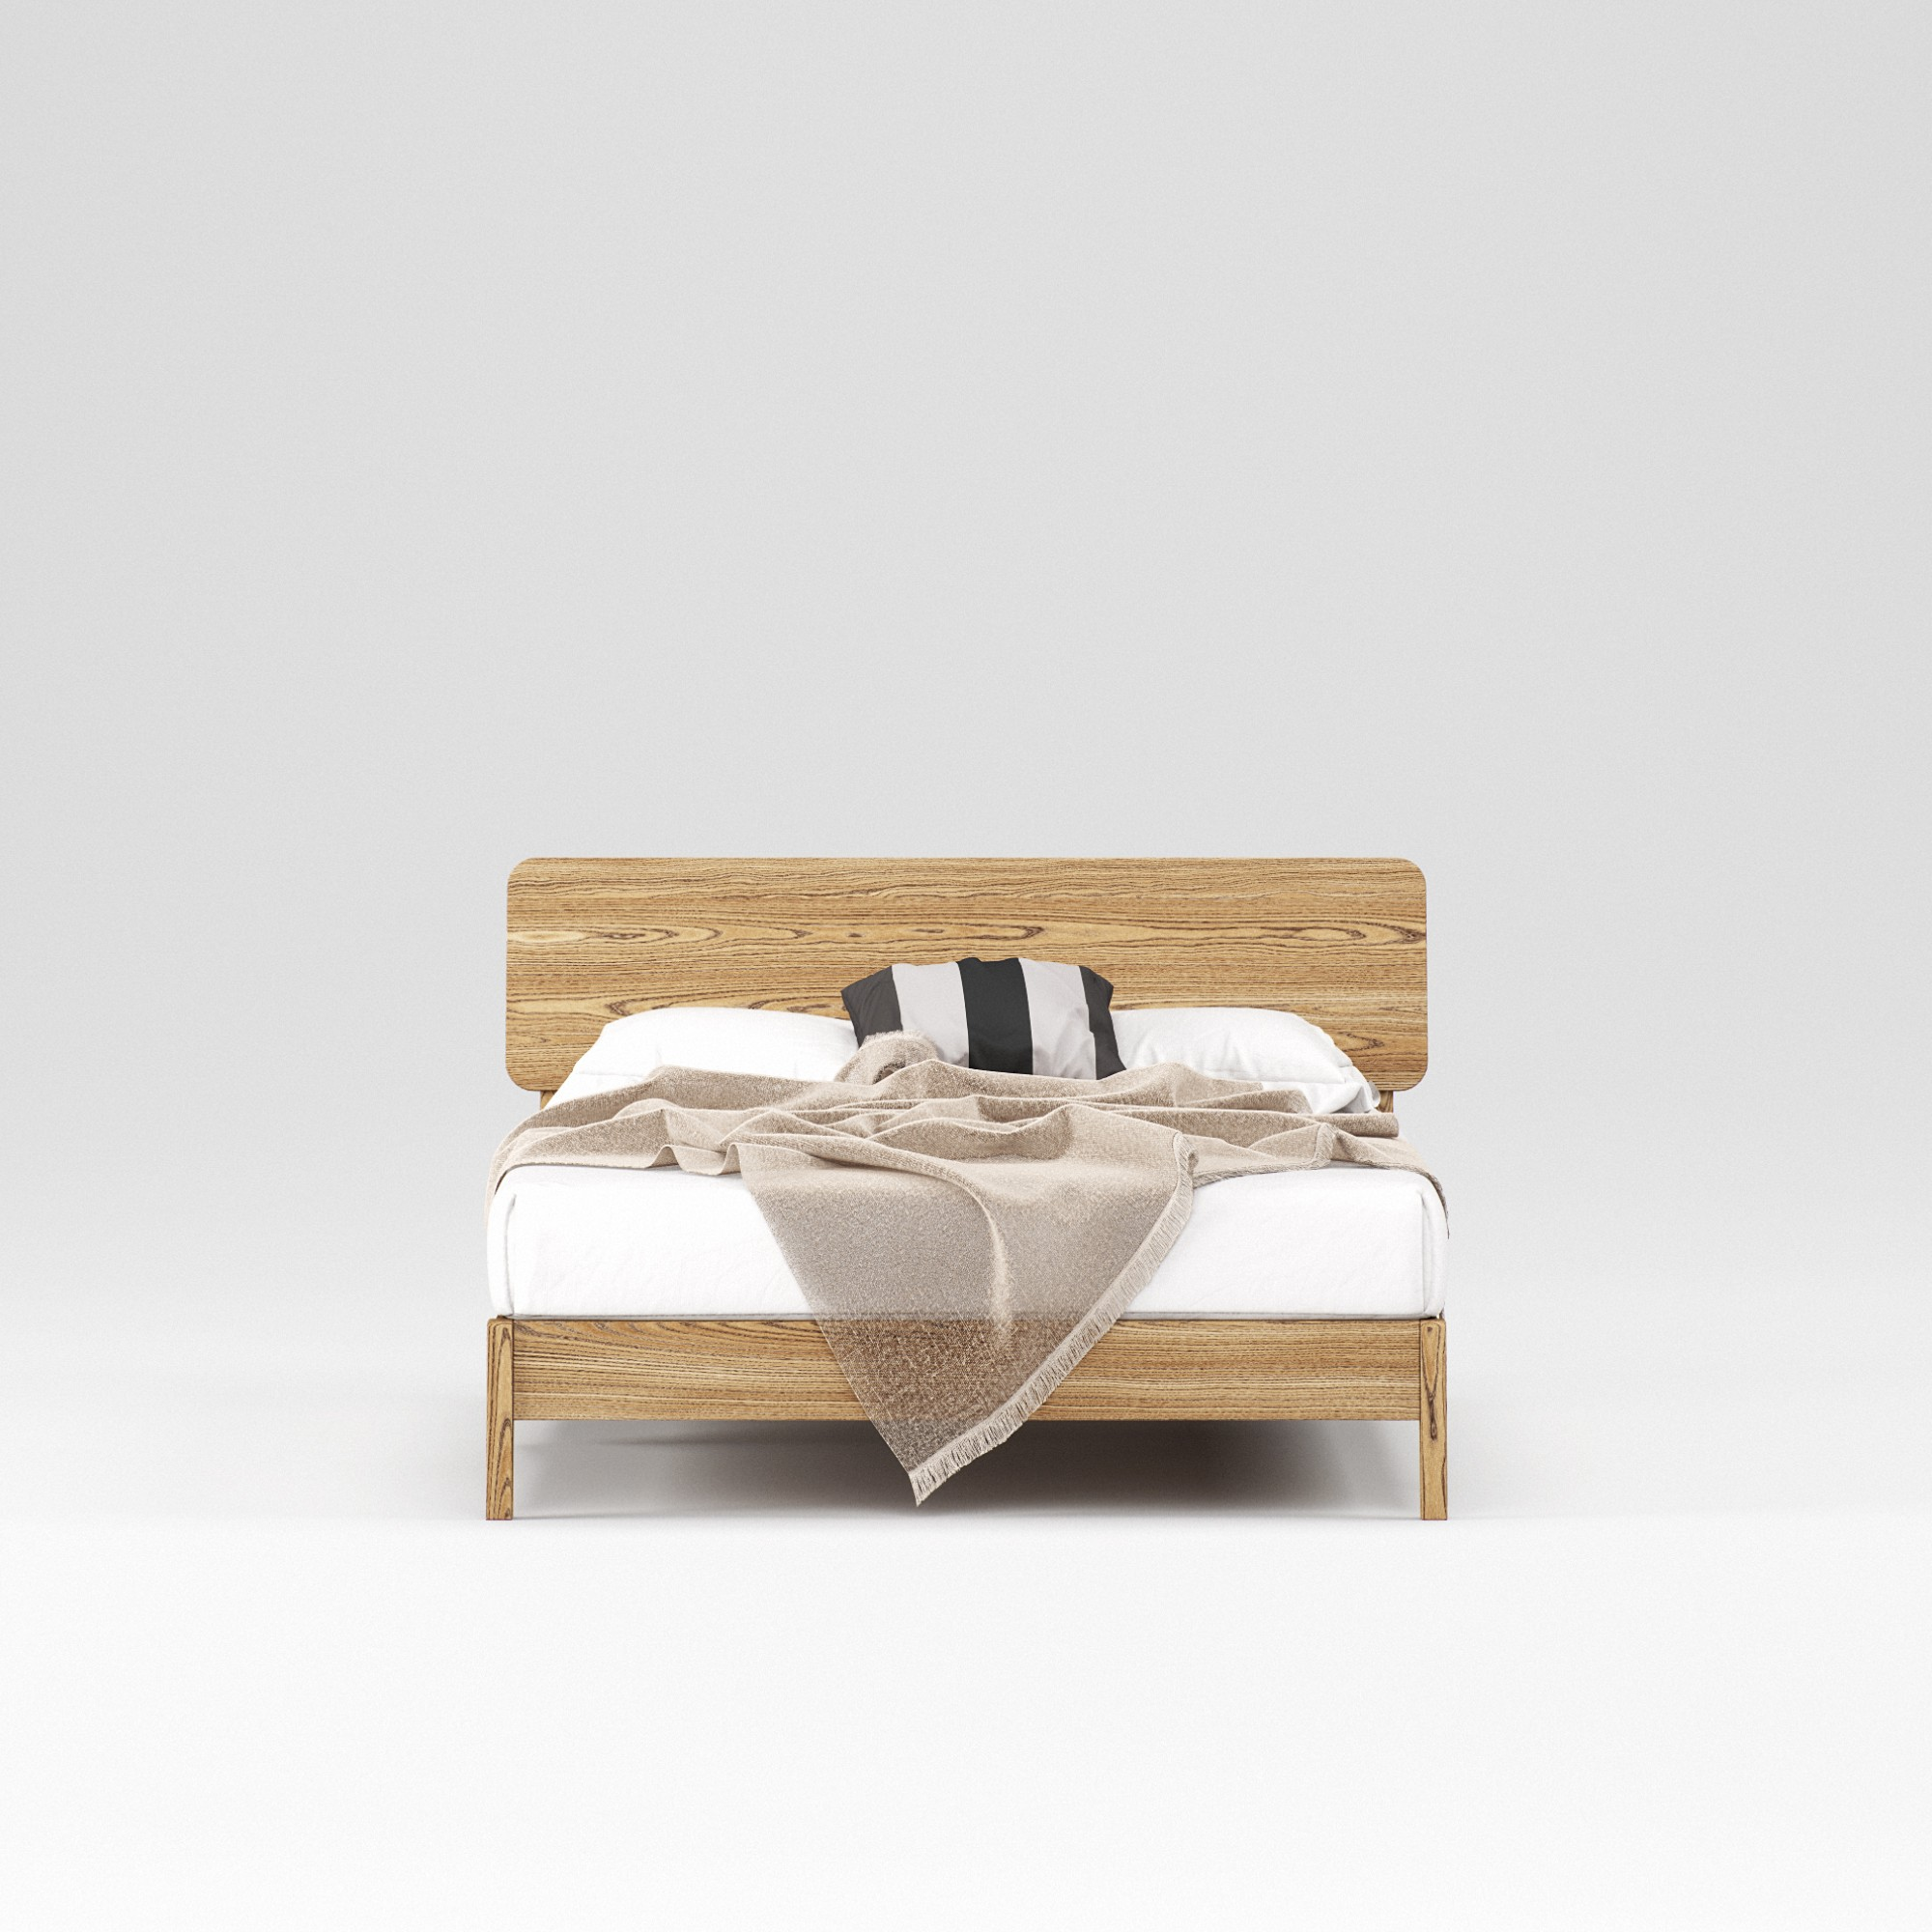 Double wooden bed Norwich 140×200 – show room sample - Фото №3